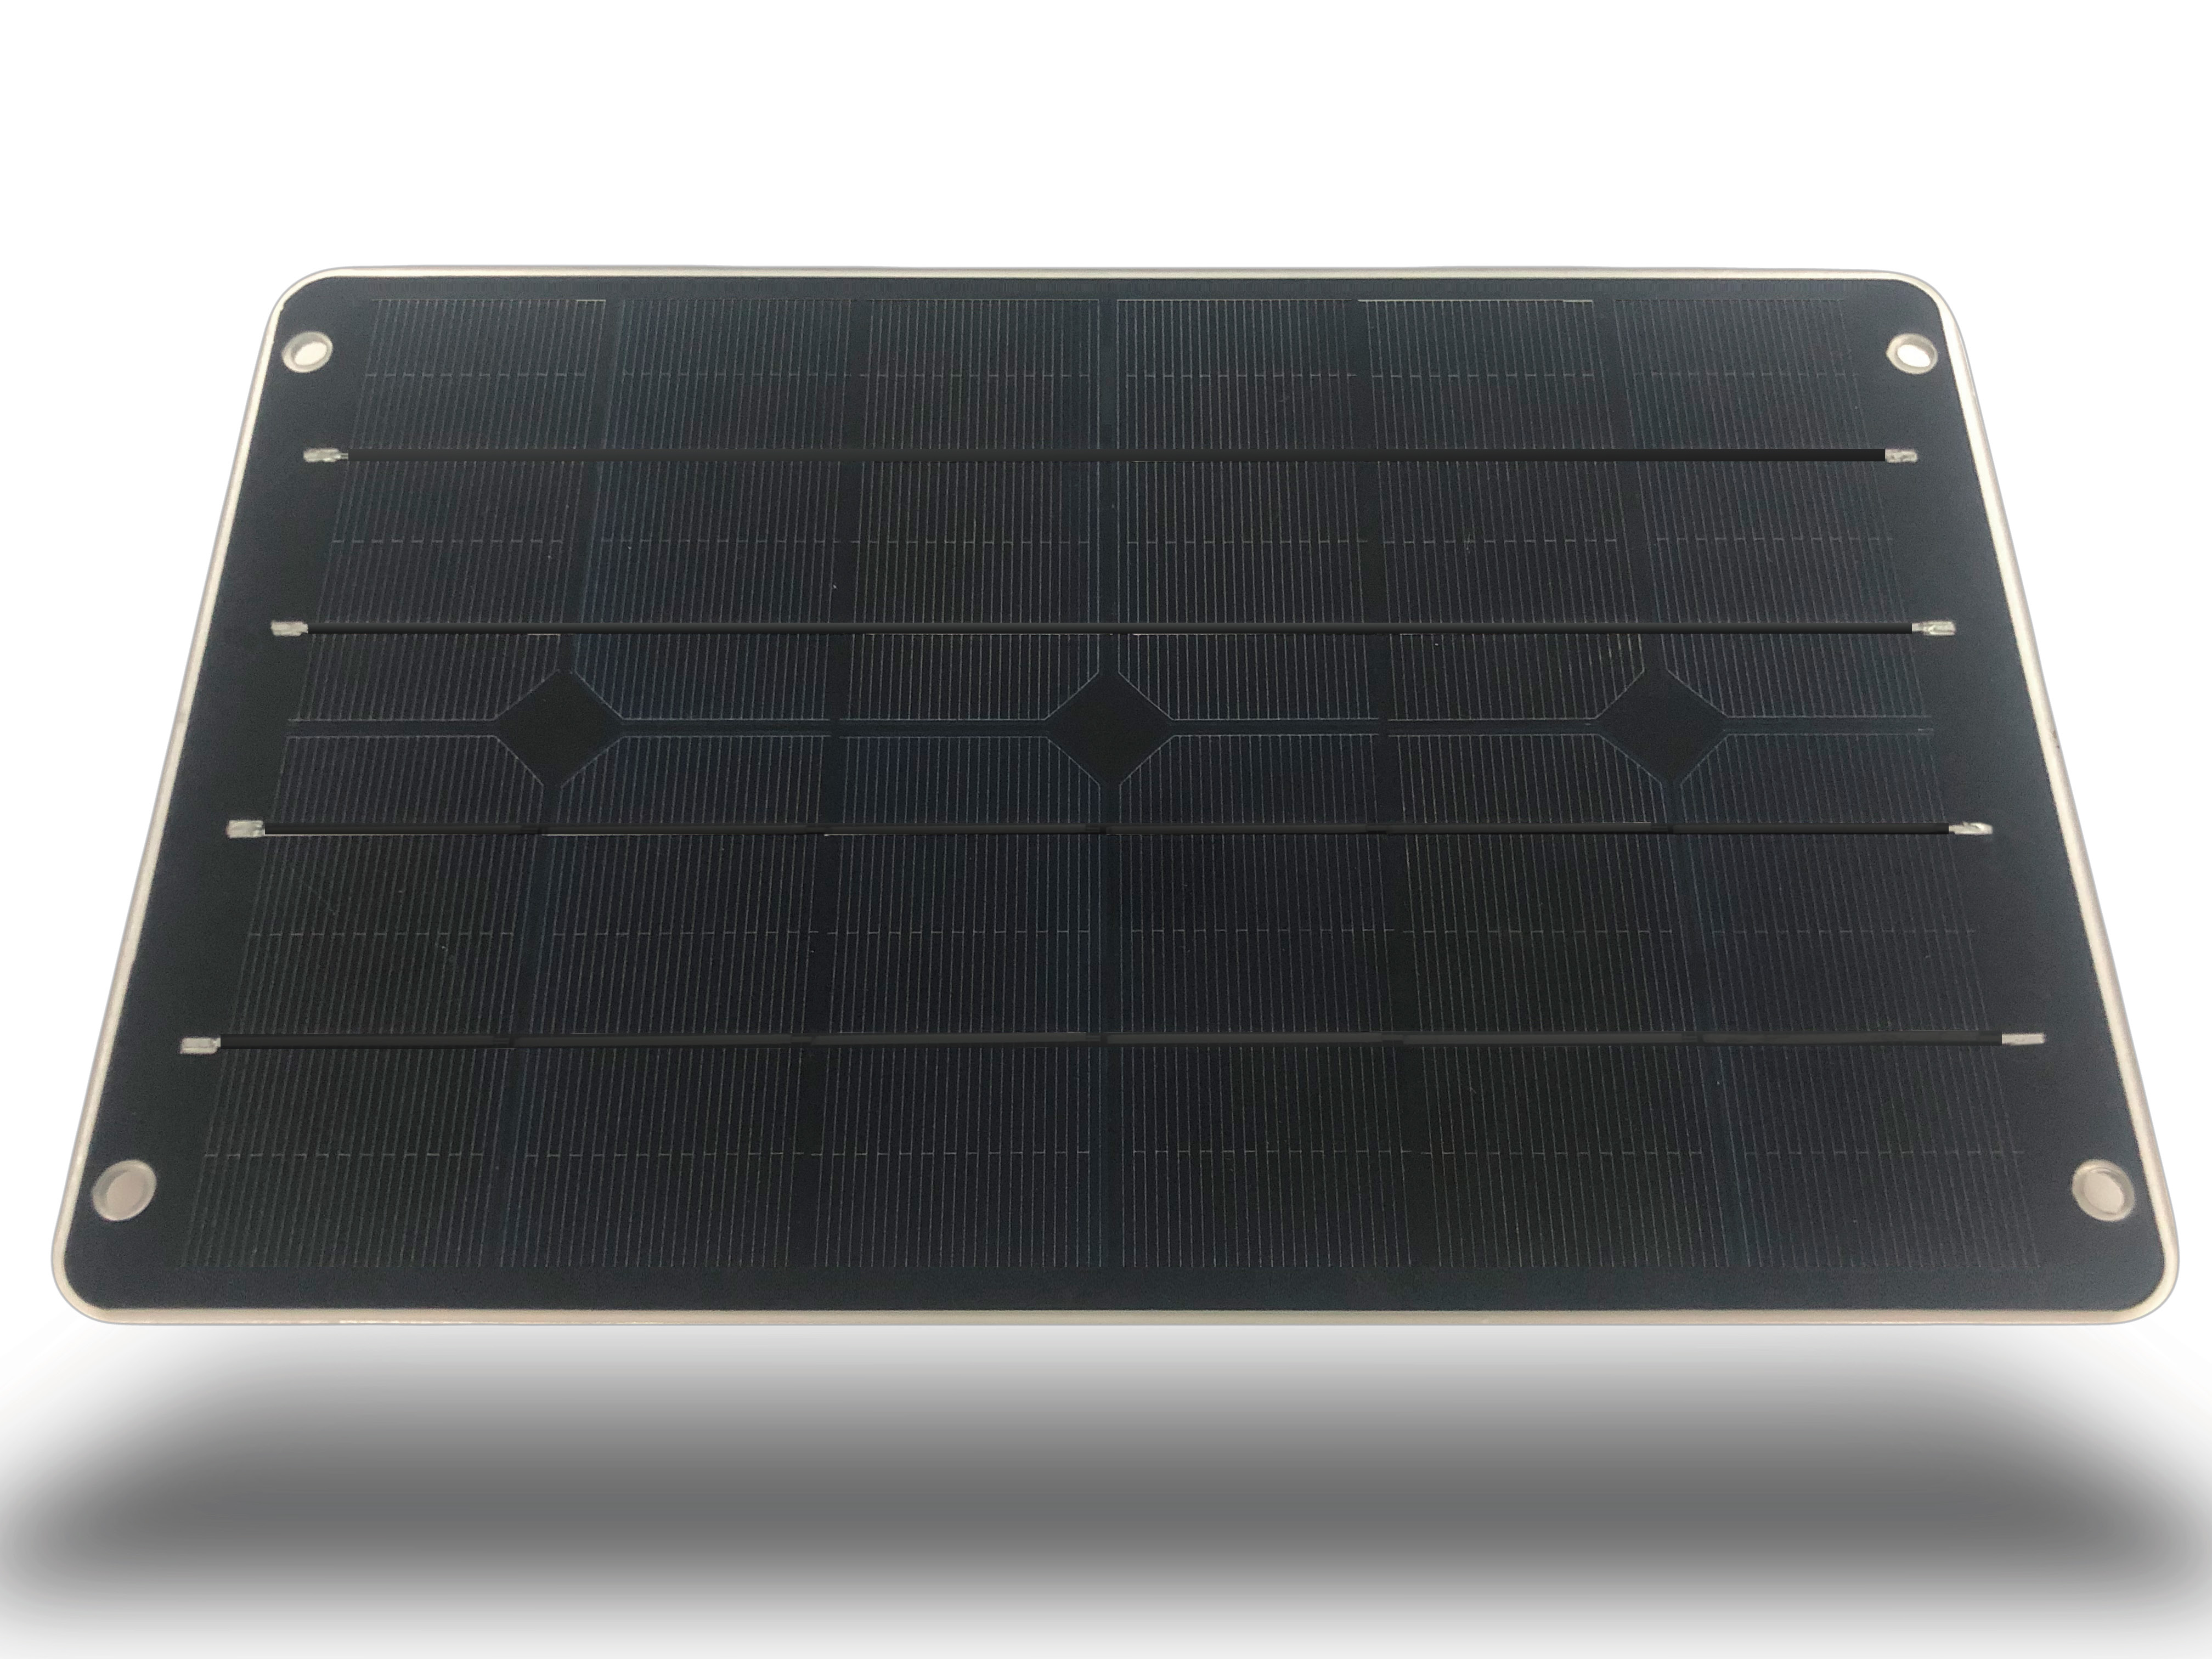 Intersolar: OPES Solutions presents standard solar module for mobile applications